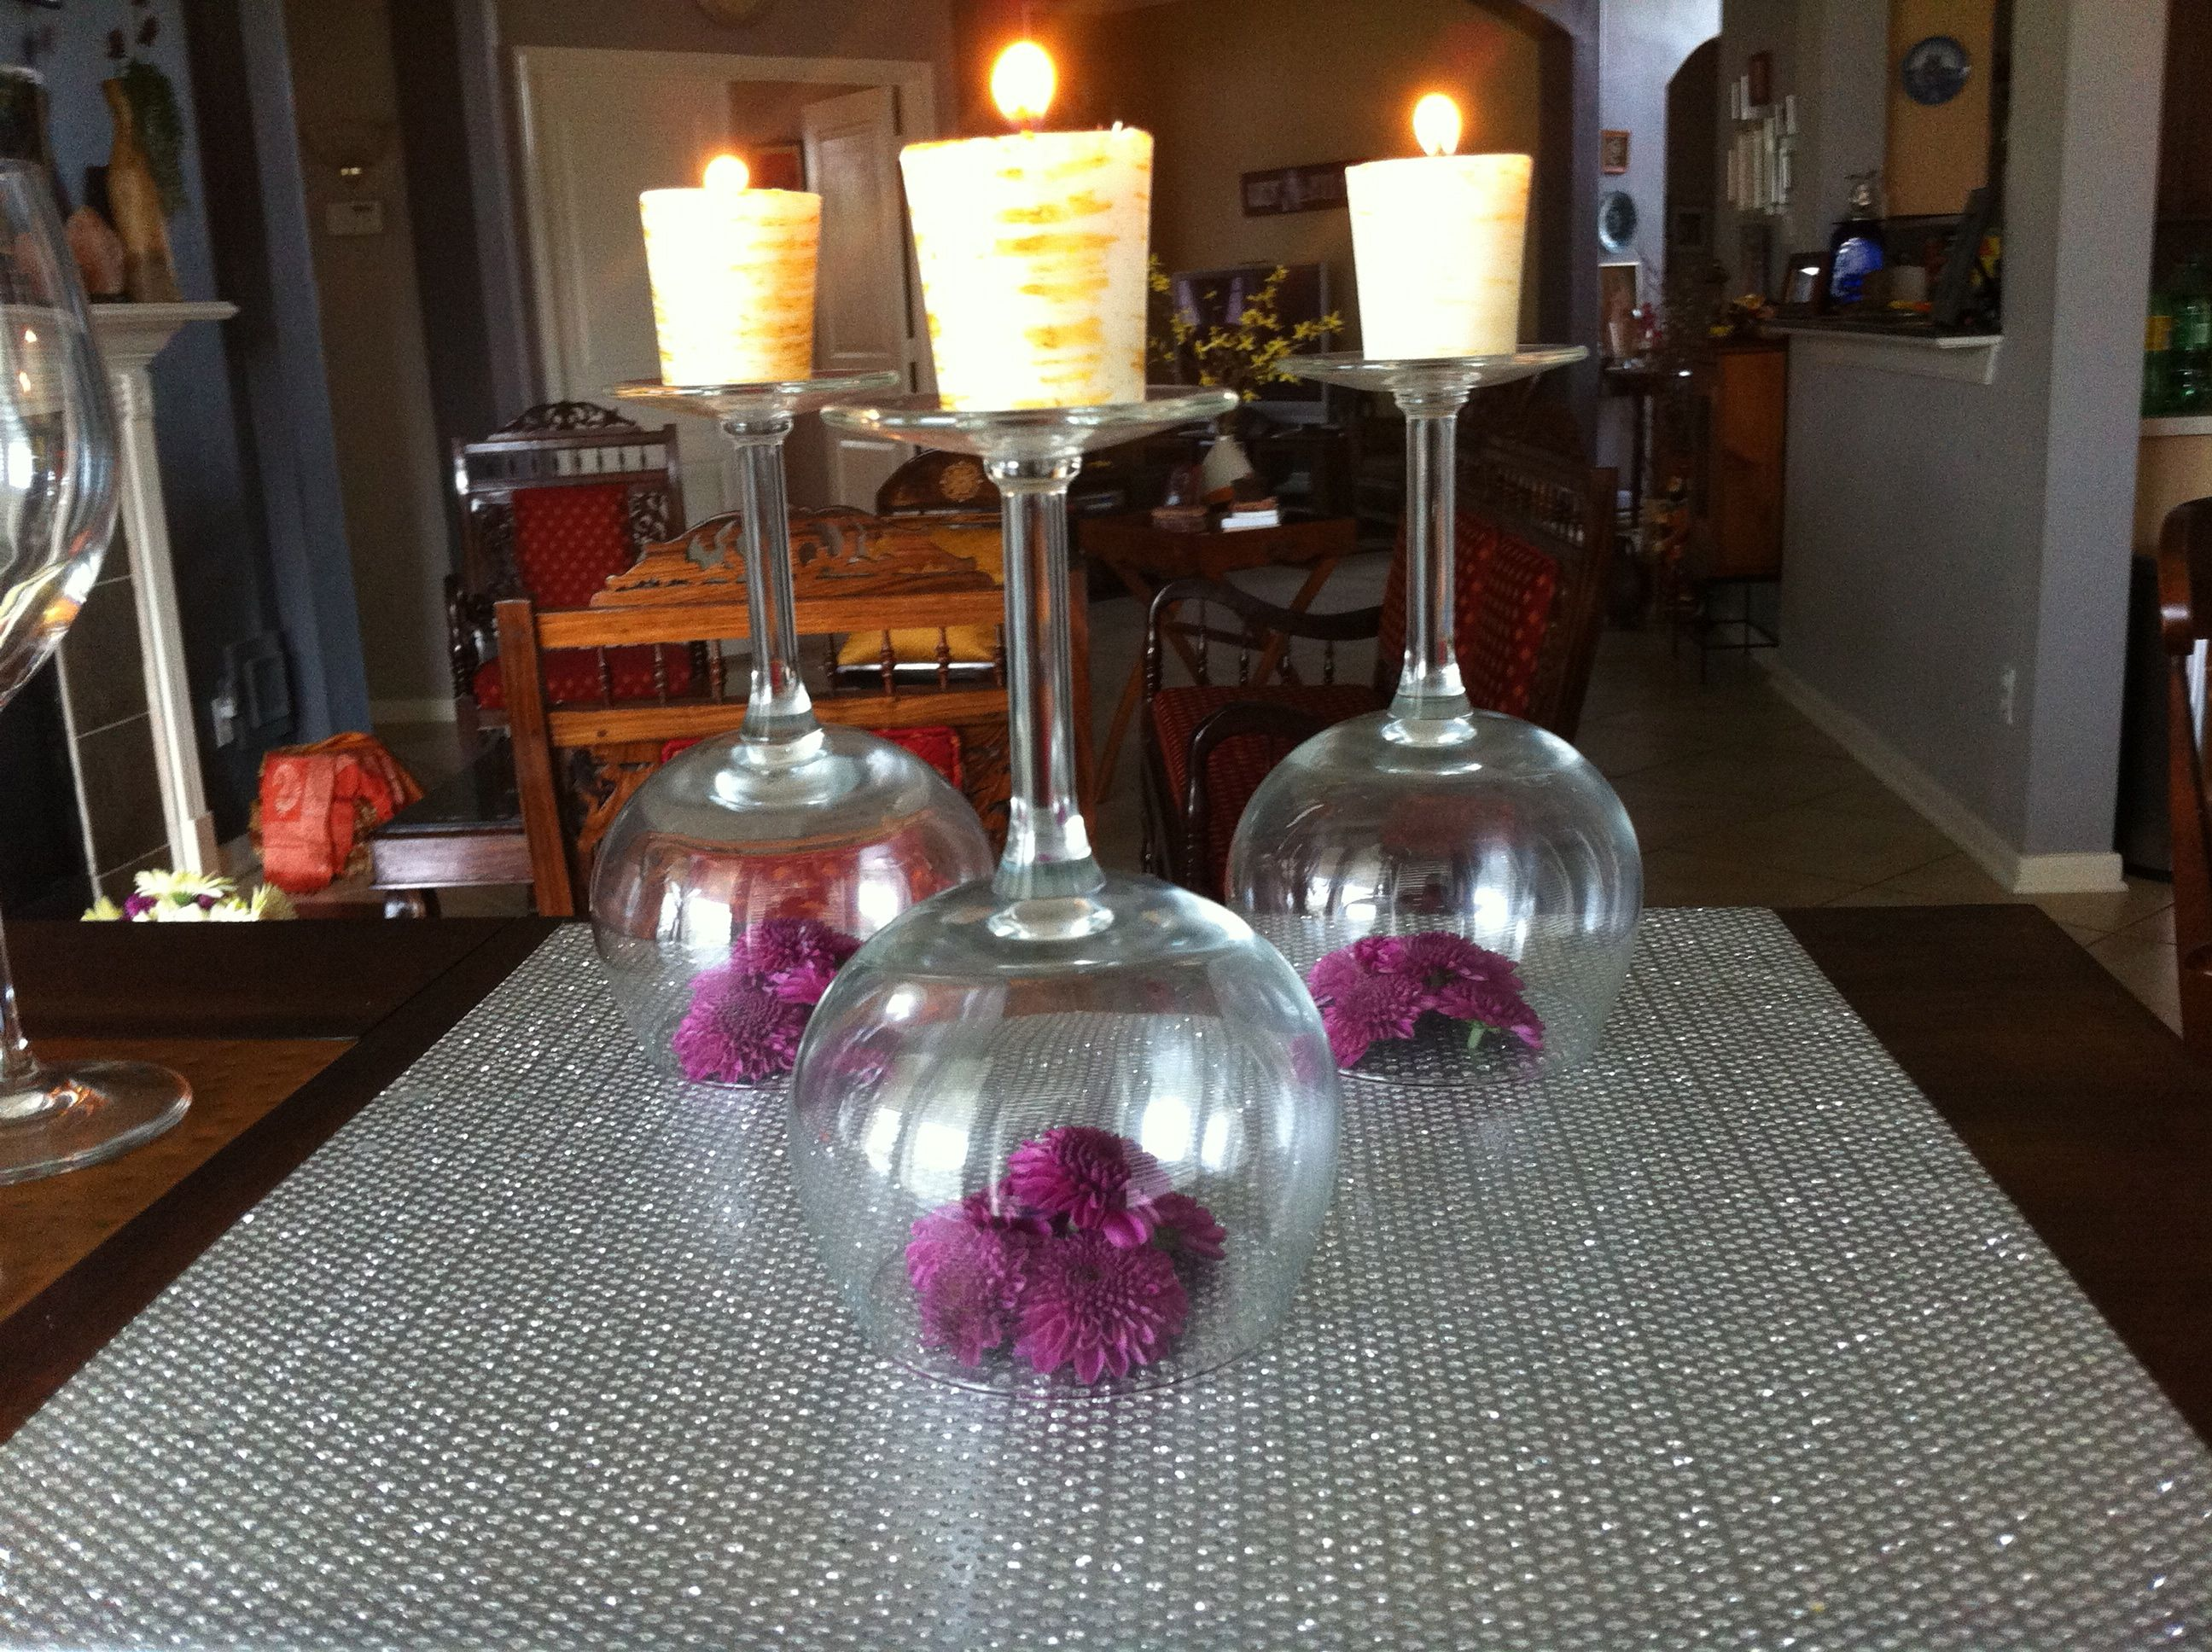 Another use for the wine glasses | Diwali decorations, Amazing decor,  Flower arrangements